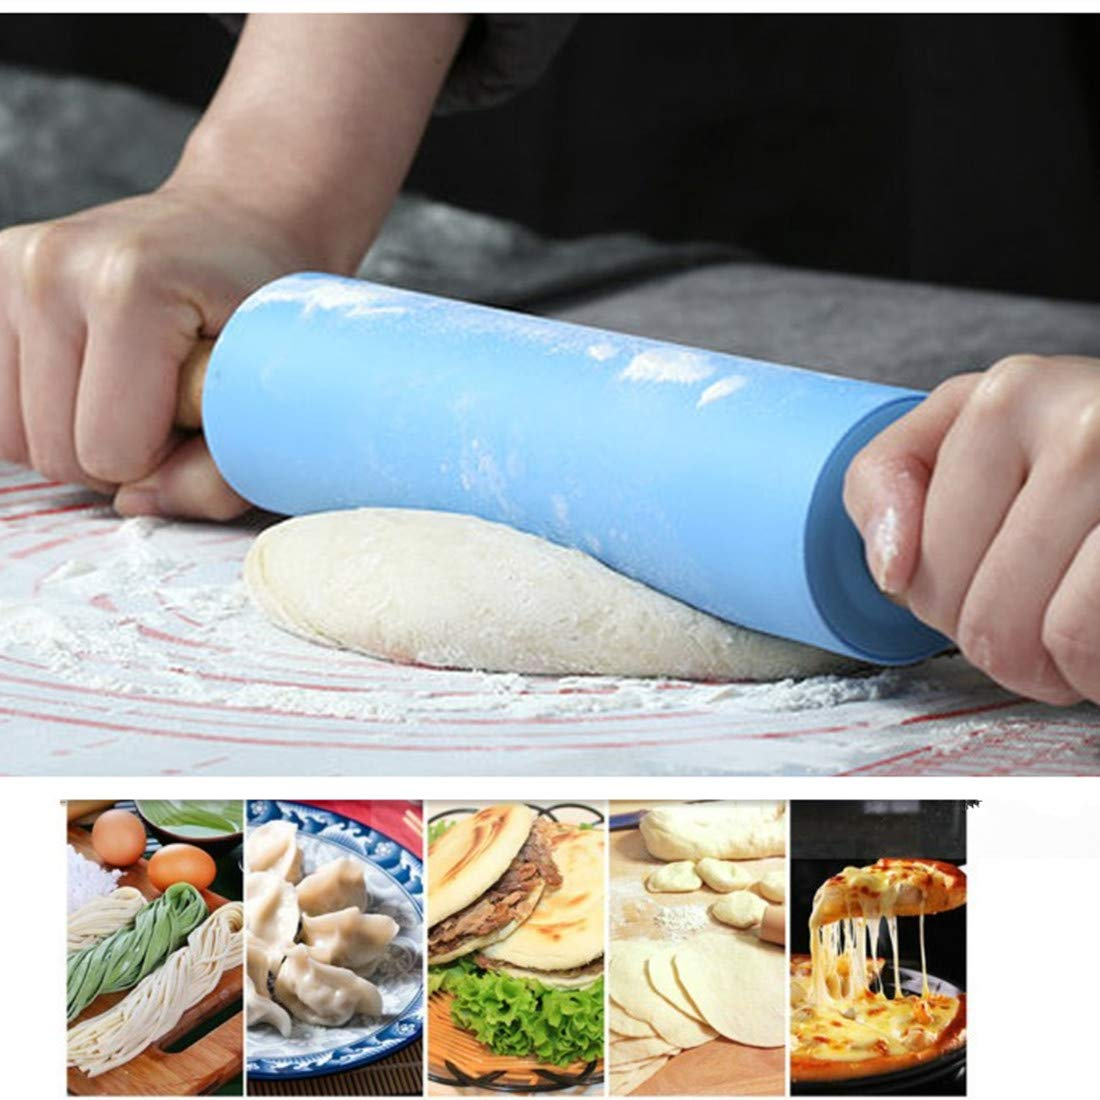 and Cookies,15 x 2 inches Kisshome Silicone Rolling Pins Dough Rollers Non Stick Rolling Pins Kitchen Tools for Baking Dough,Fondant,Pizza Pie Silicone Silicone